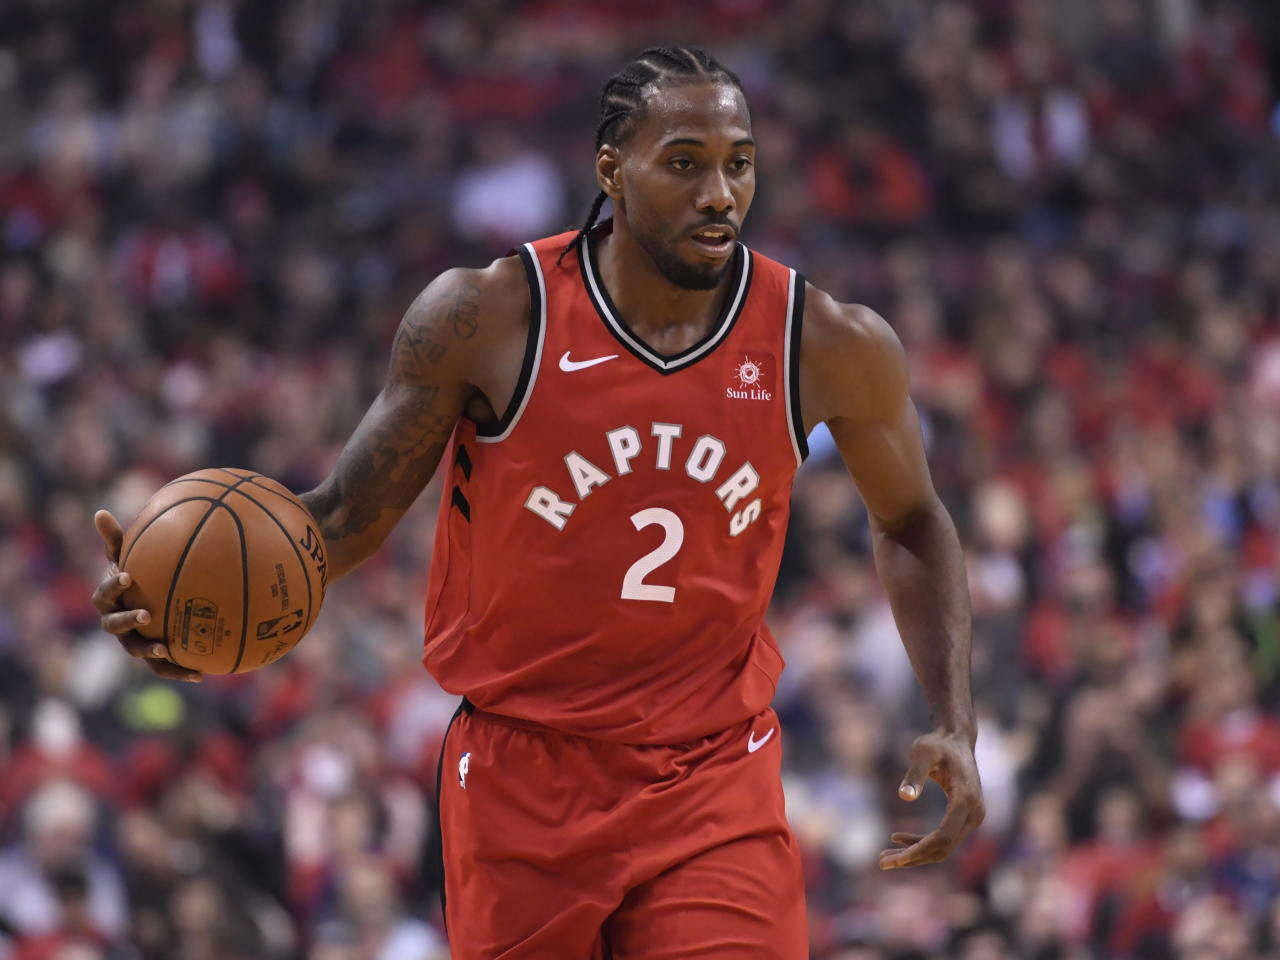 Toronto Raptors forward Kawhi Leonard (2) takes the ball up court against the Cleveland Cavaliers during first half NBA basketball action in Toronto on Wednesday, Oct. 17, 2018. (Nathan Denette/The Canadian Press via AP)